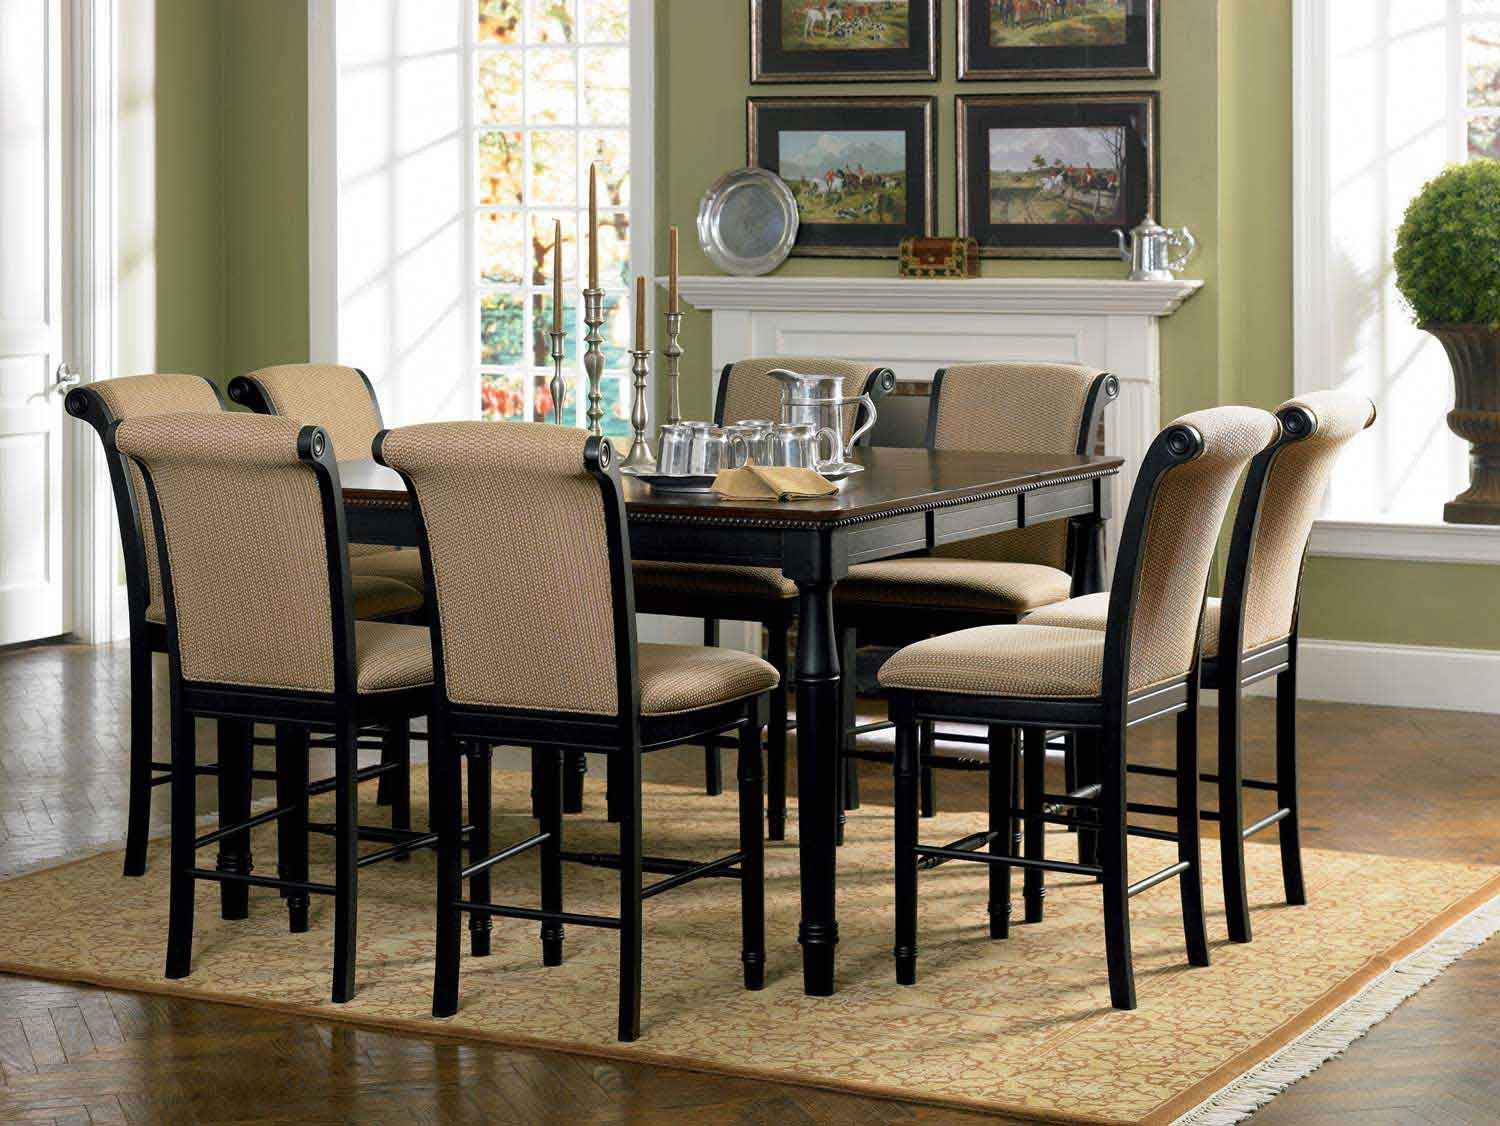 Coaster Cabrillo Counter Height Dining Set - Black-Amaretto